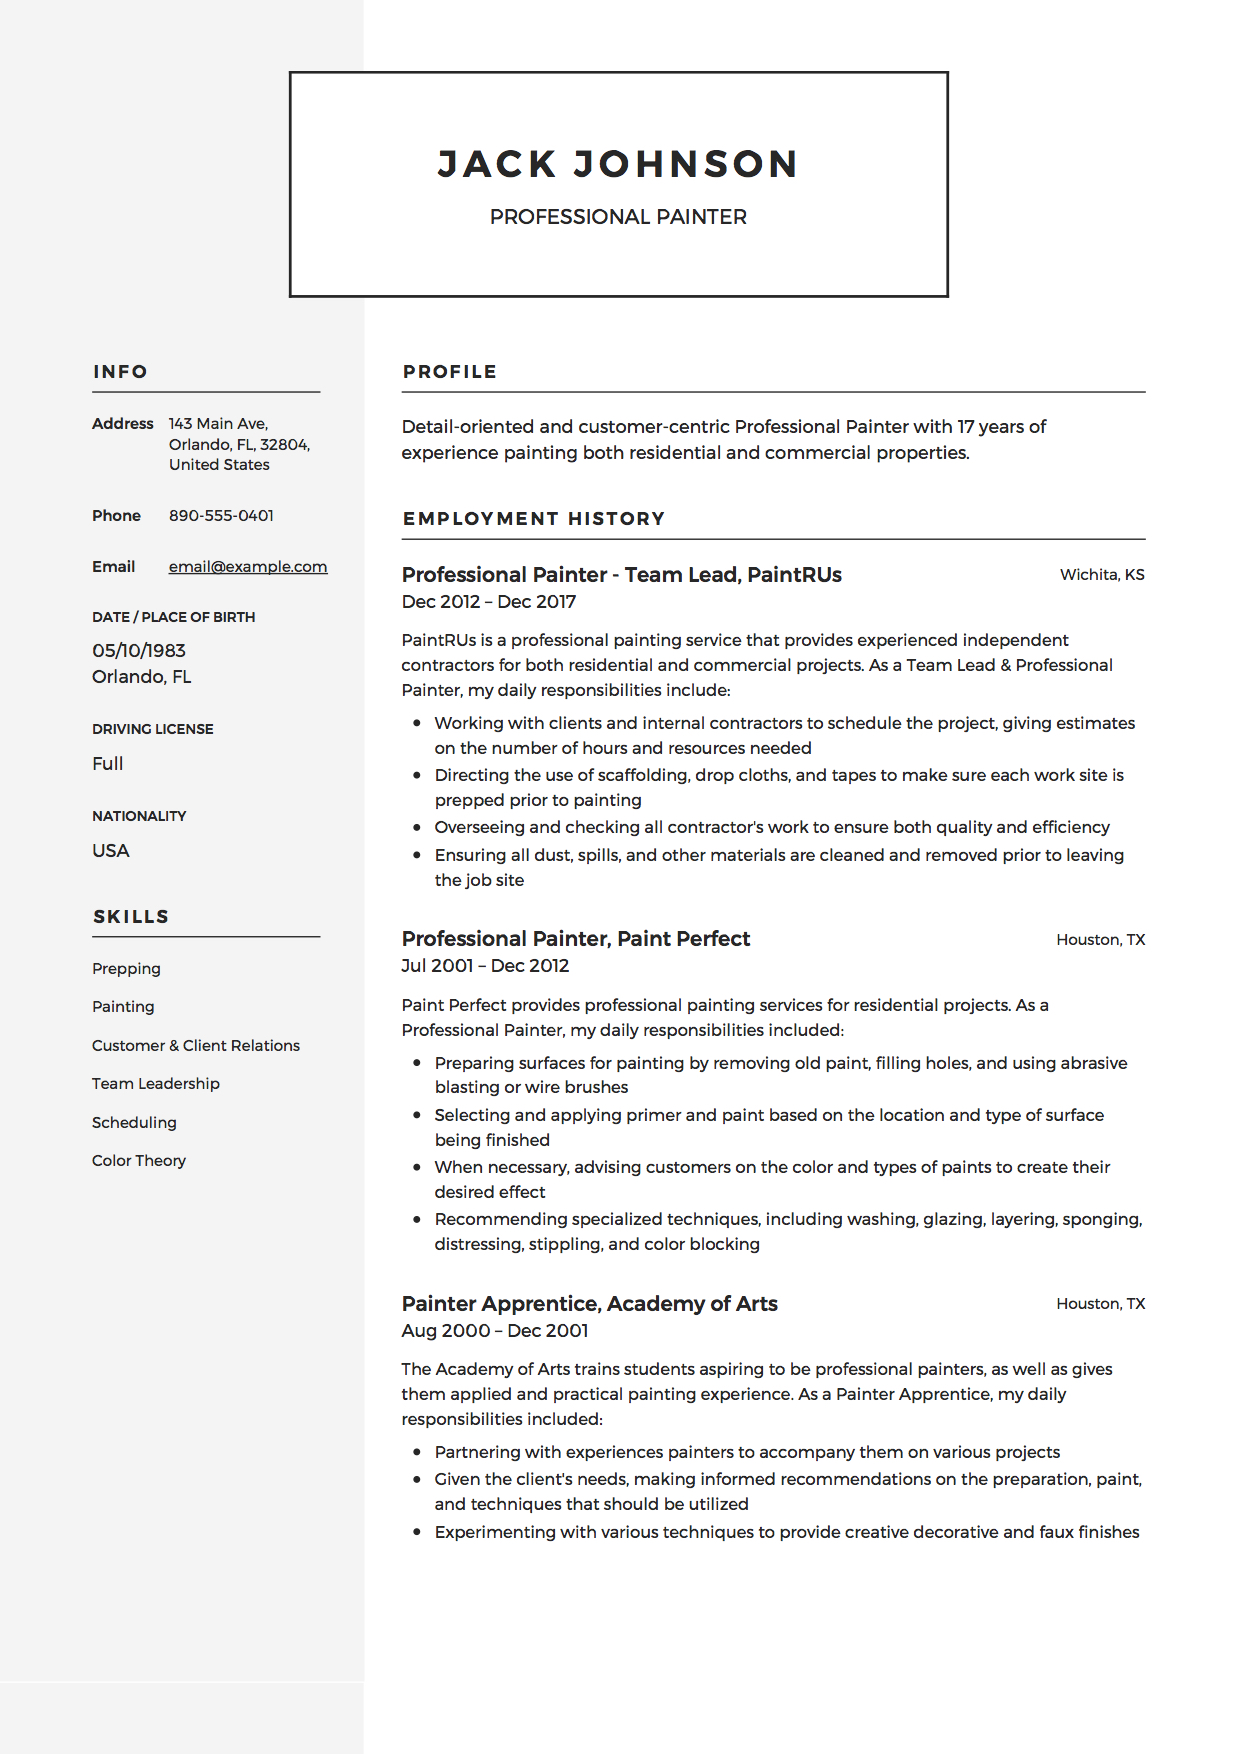 Resume - Professional Painter Example